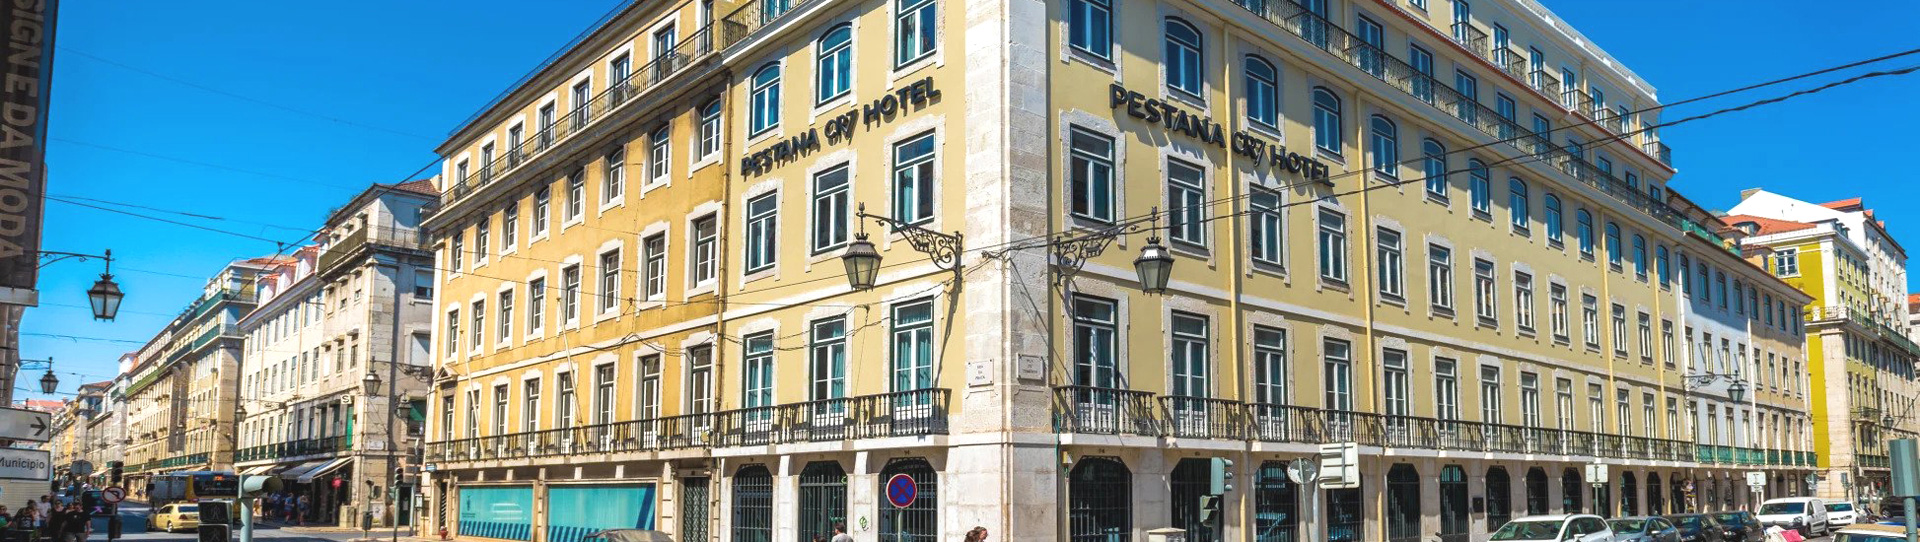 Pestana CR7 Lisboa - Photo 1